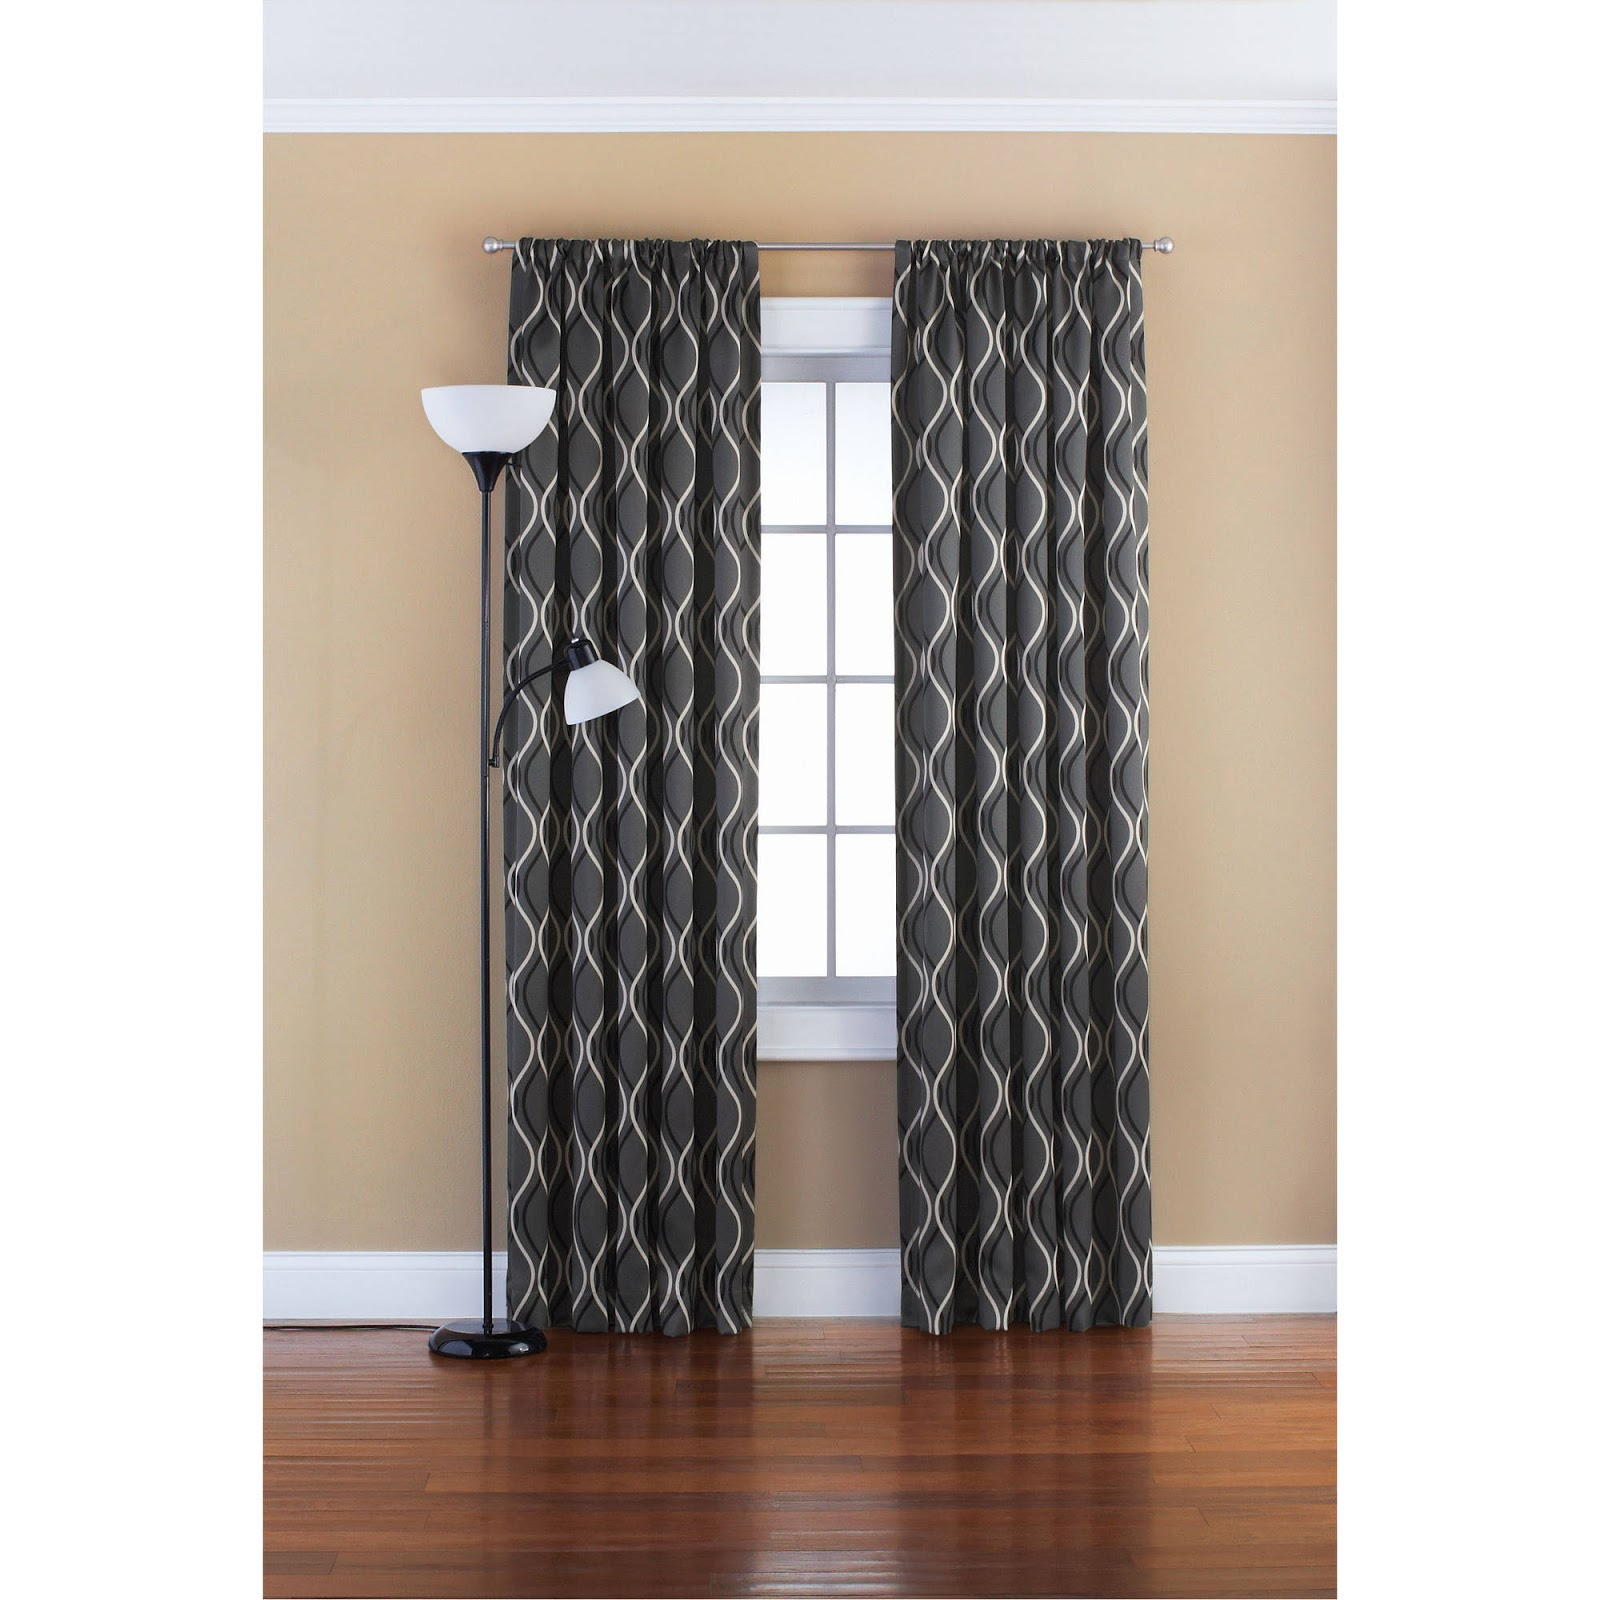 How To Make Pleated Curtains Pleats In Primitive Professional Pull Up